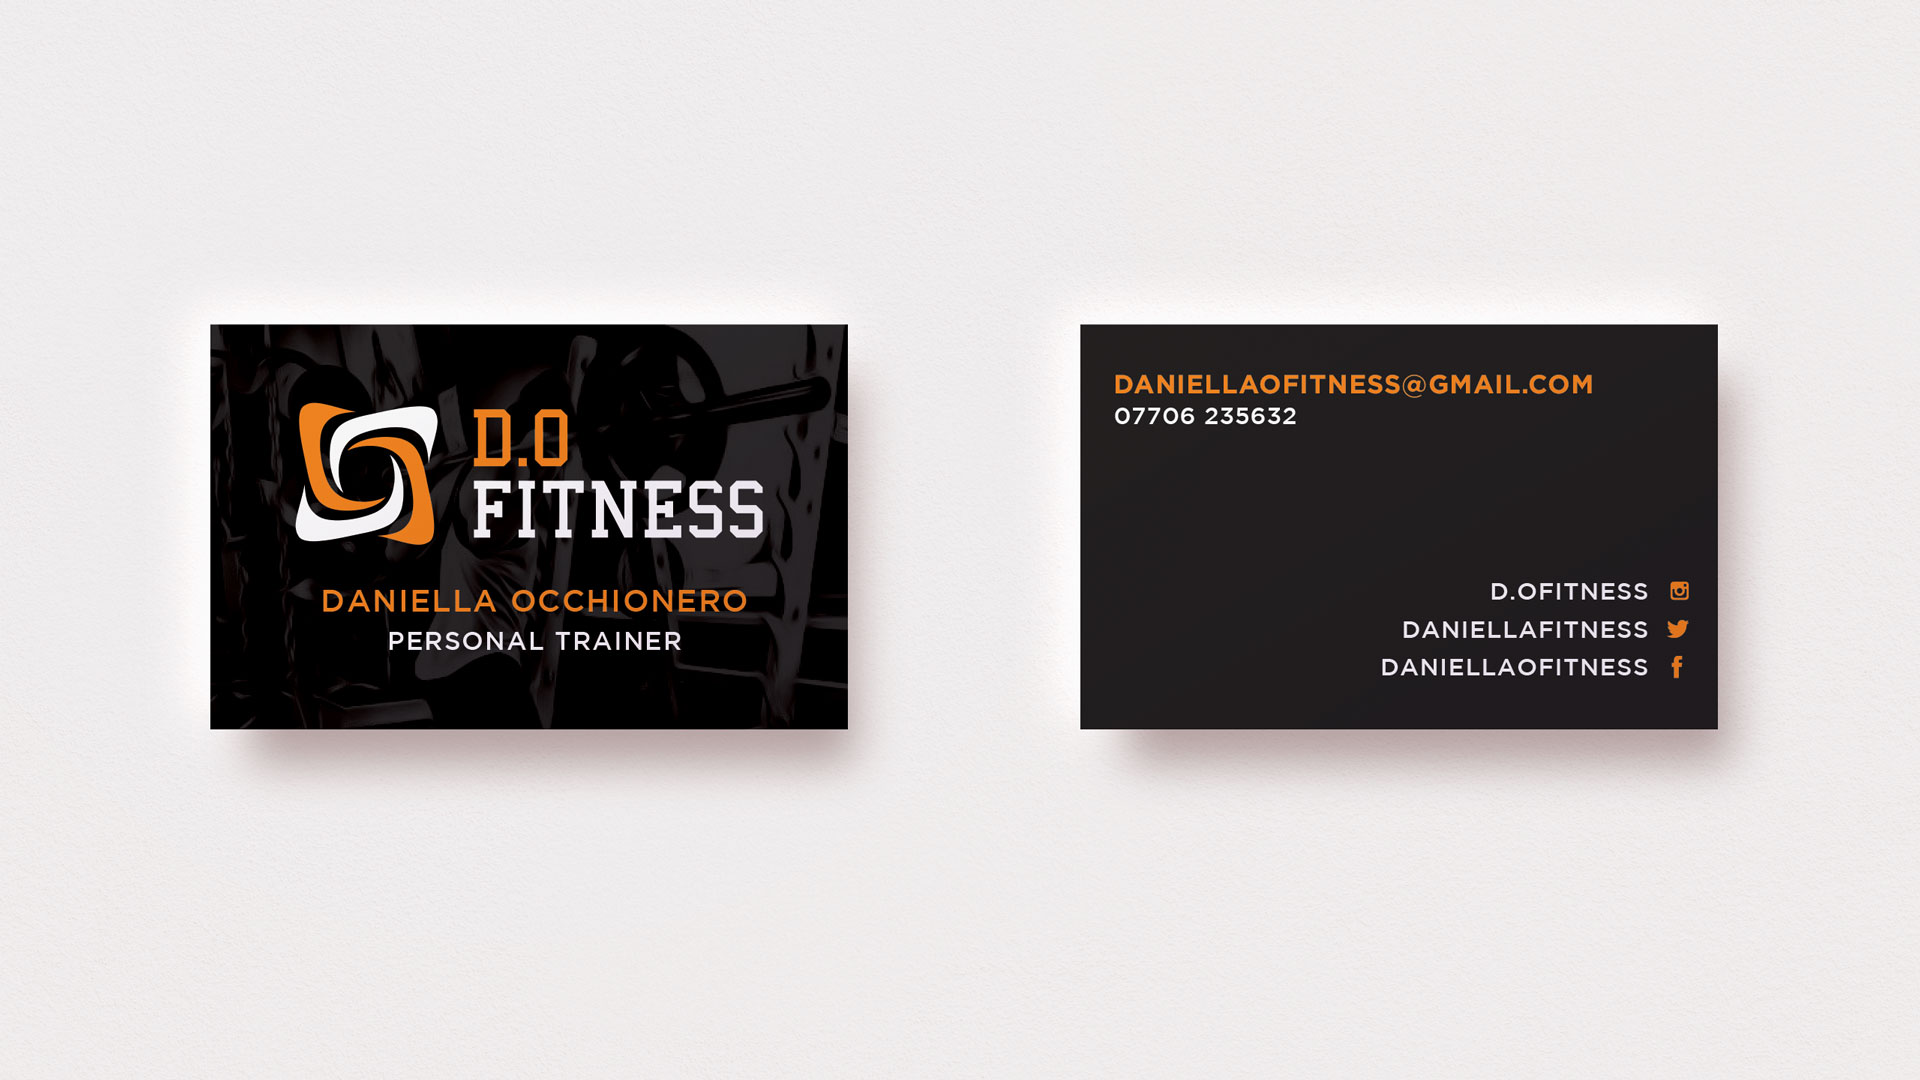 D.O Fitness Business Cards